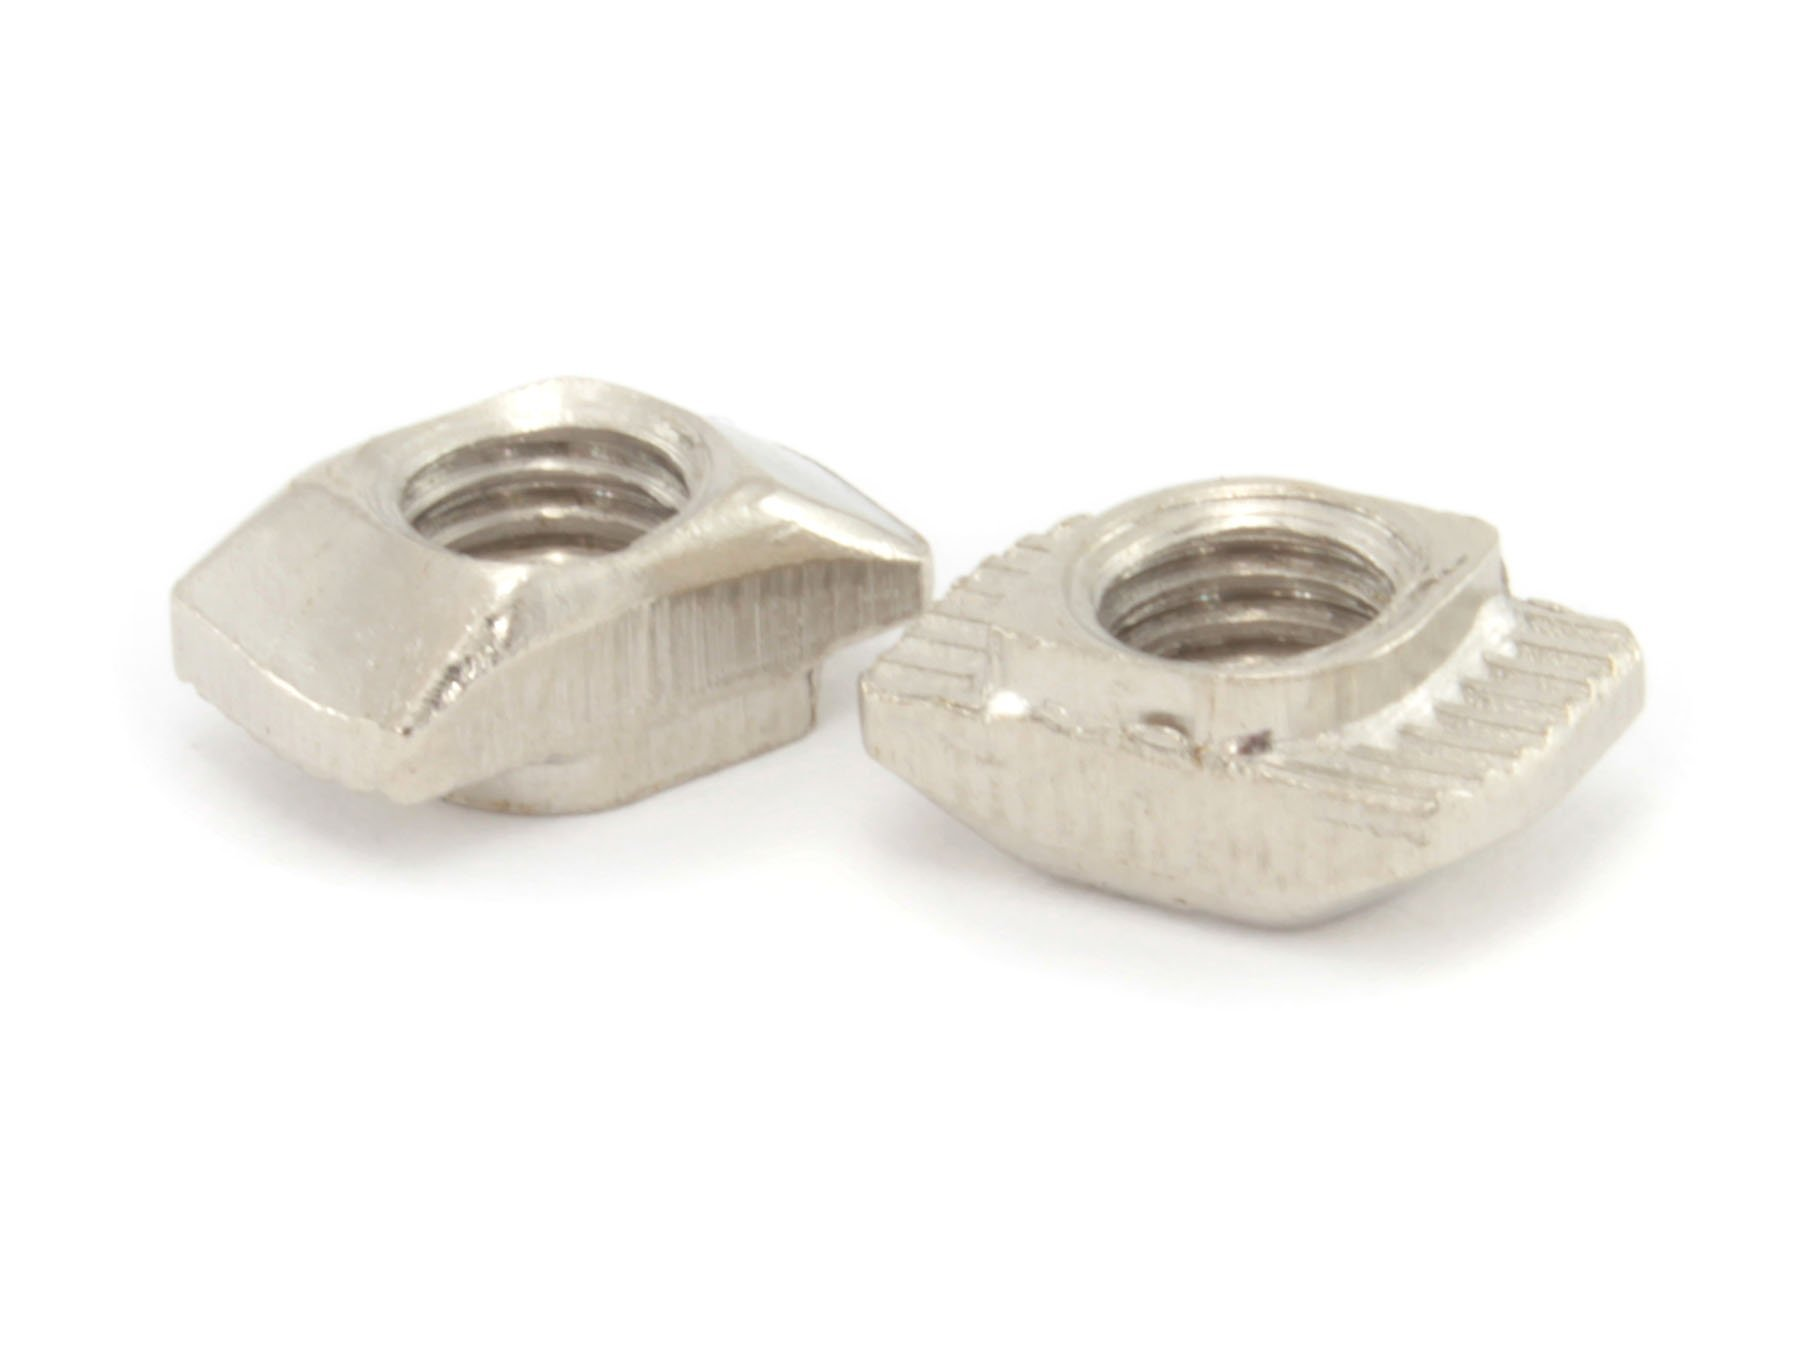 Hammer Drop-In M5 T Nut for 20mm T-Slot/V-Slot Aluminum Extrusions (Pack of 500) by Generic